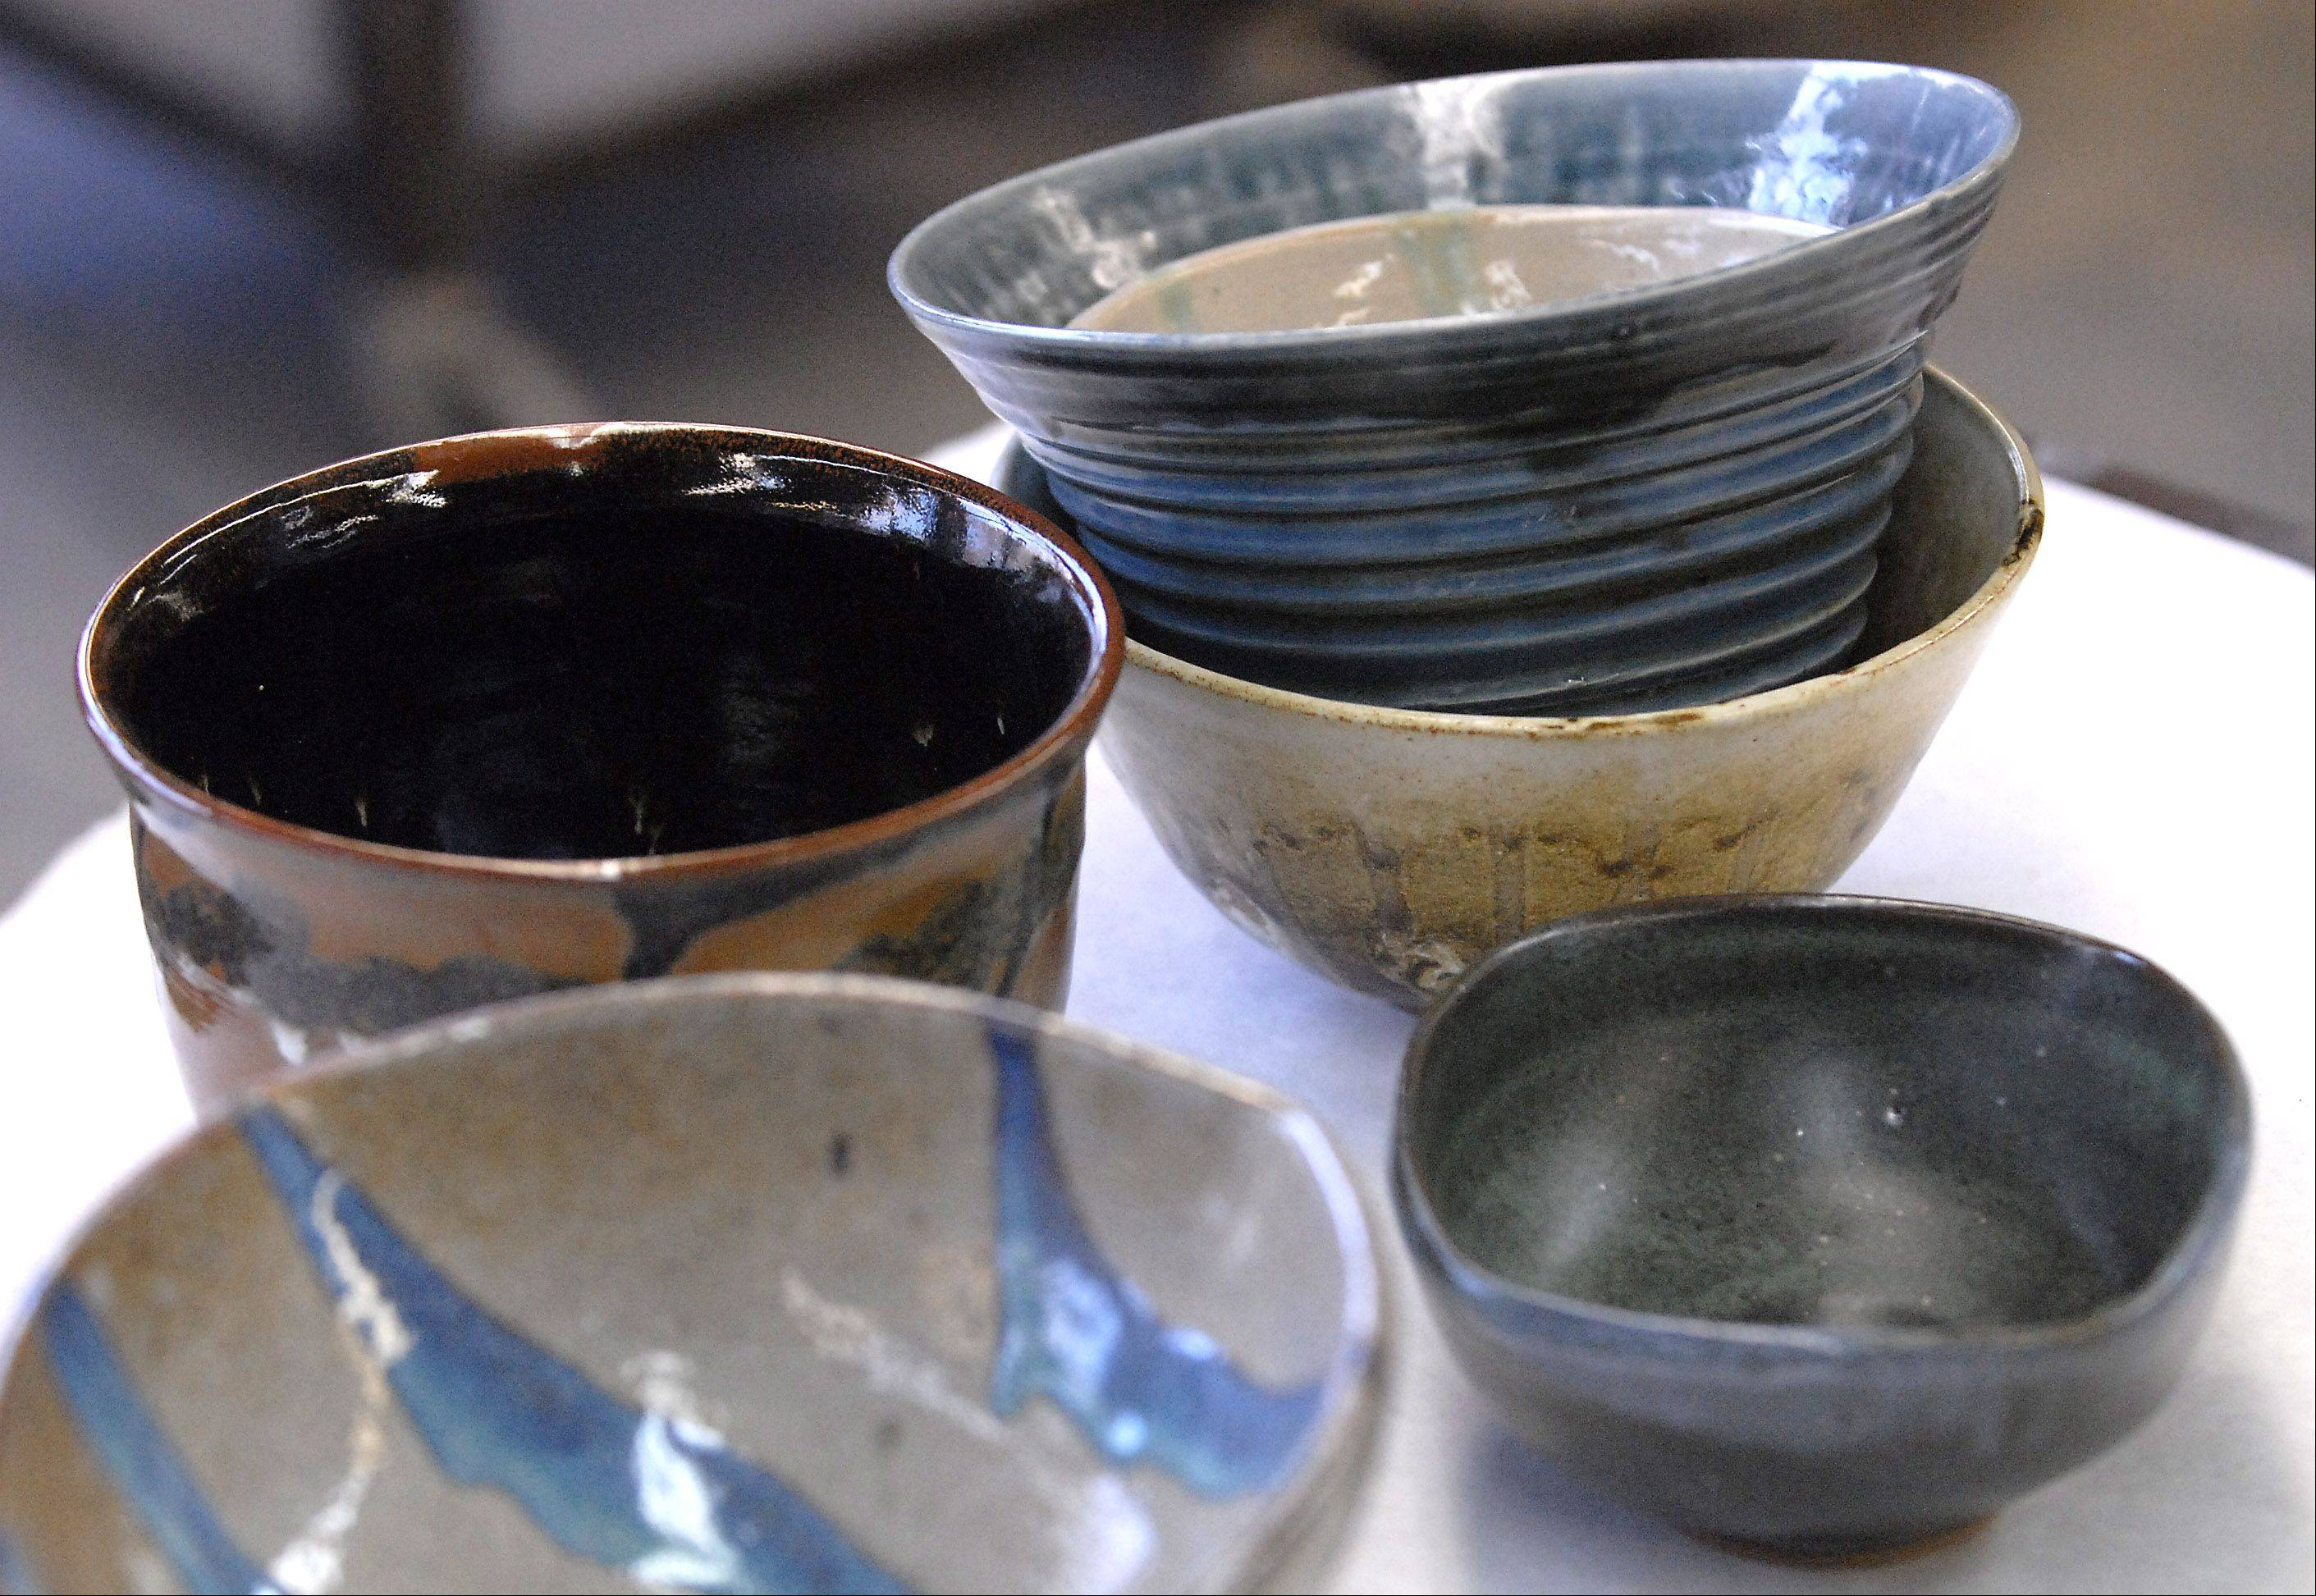 "The 10th annual Empty Bowls fundraiser comes to Oakton Community College's Des Plaines campus on Dec. 7. For $14 participants select a handcrafted bowl, like the ones pictured here from a previous fundraiser, and enjoy a meal of soup and bread as a reminder that ""someone's bowl is always empty."""